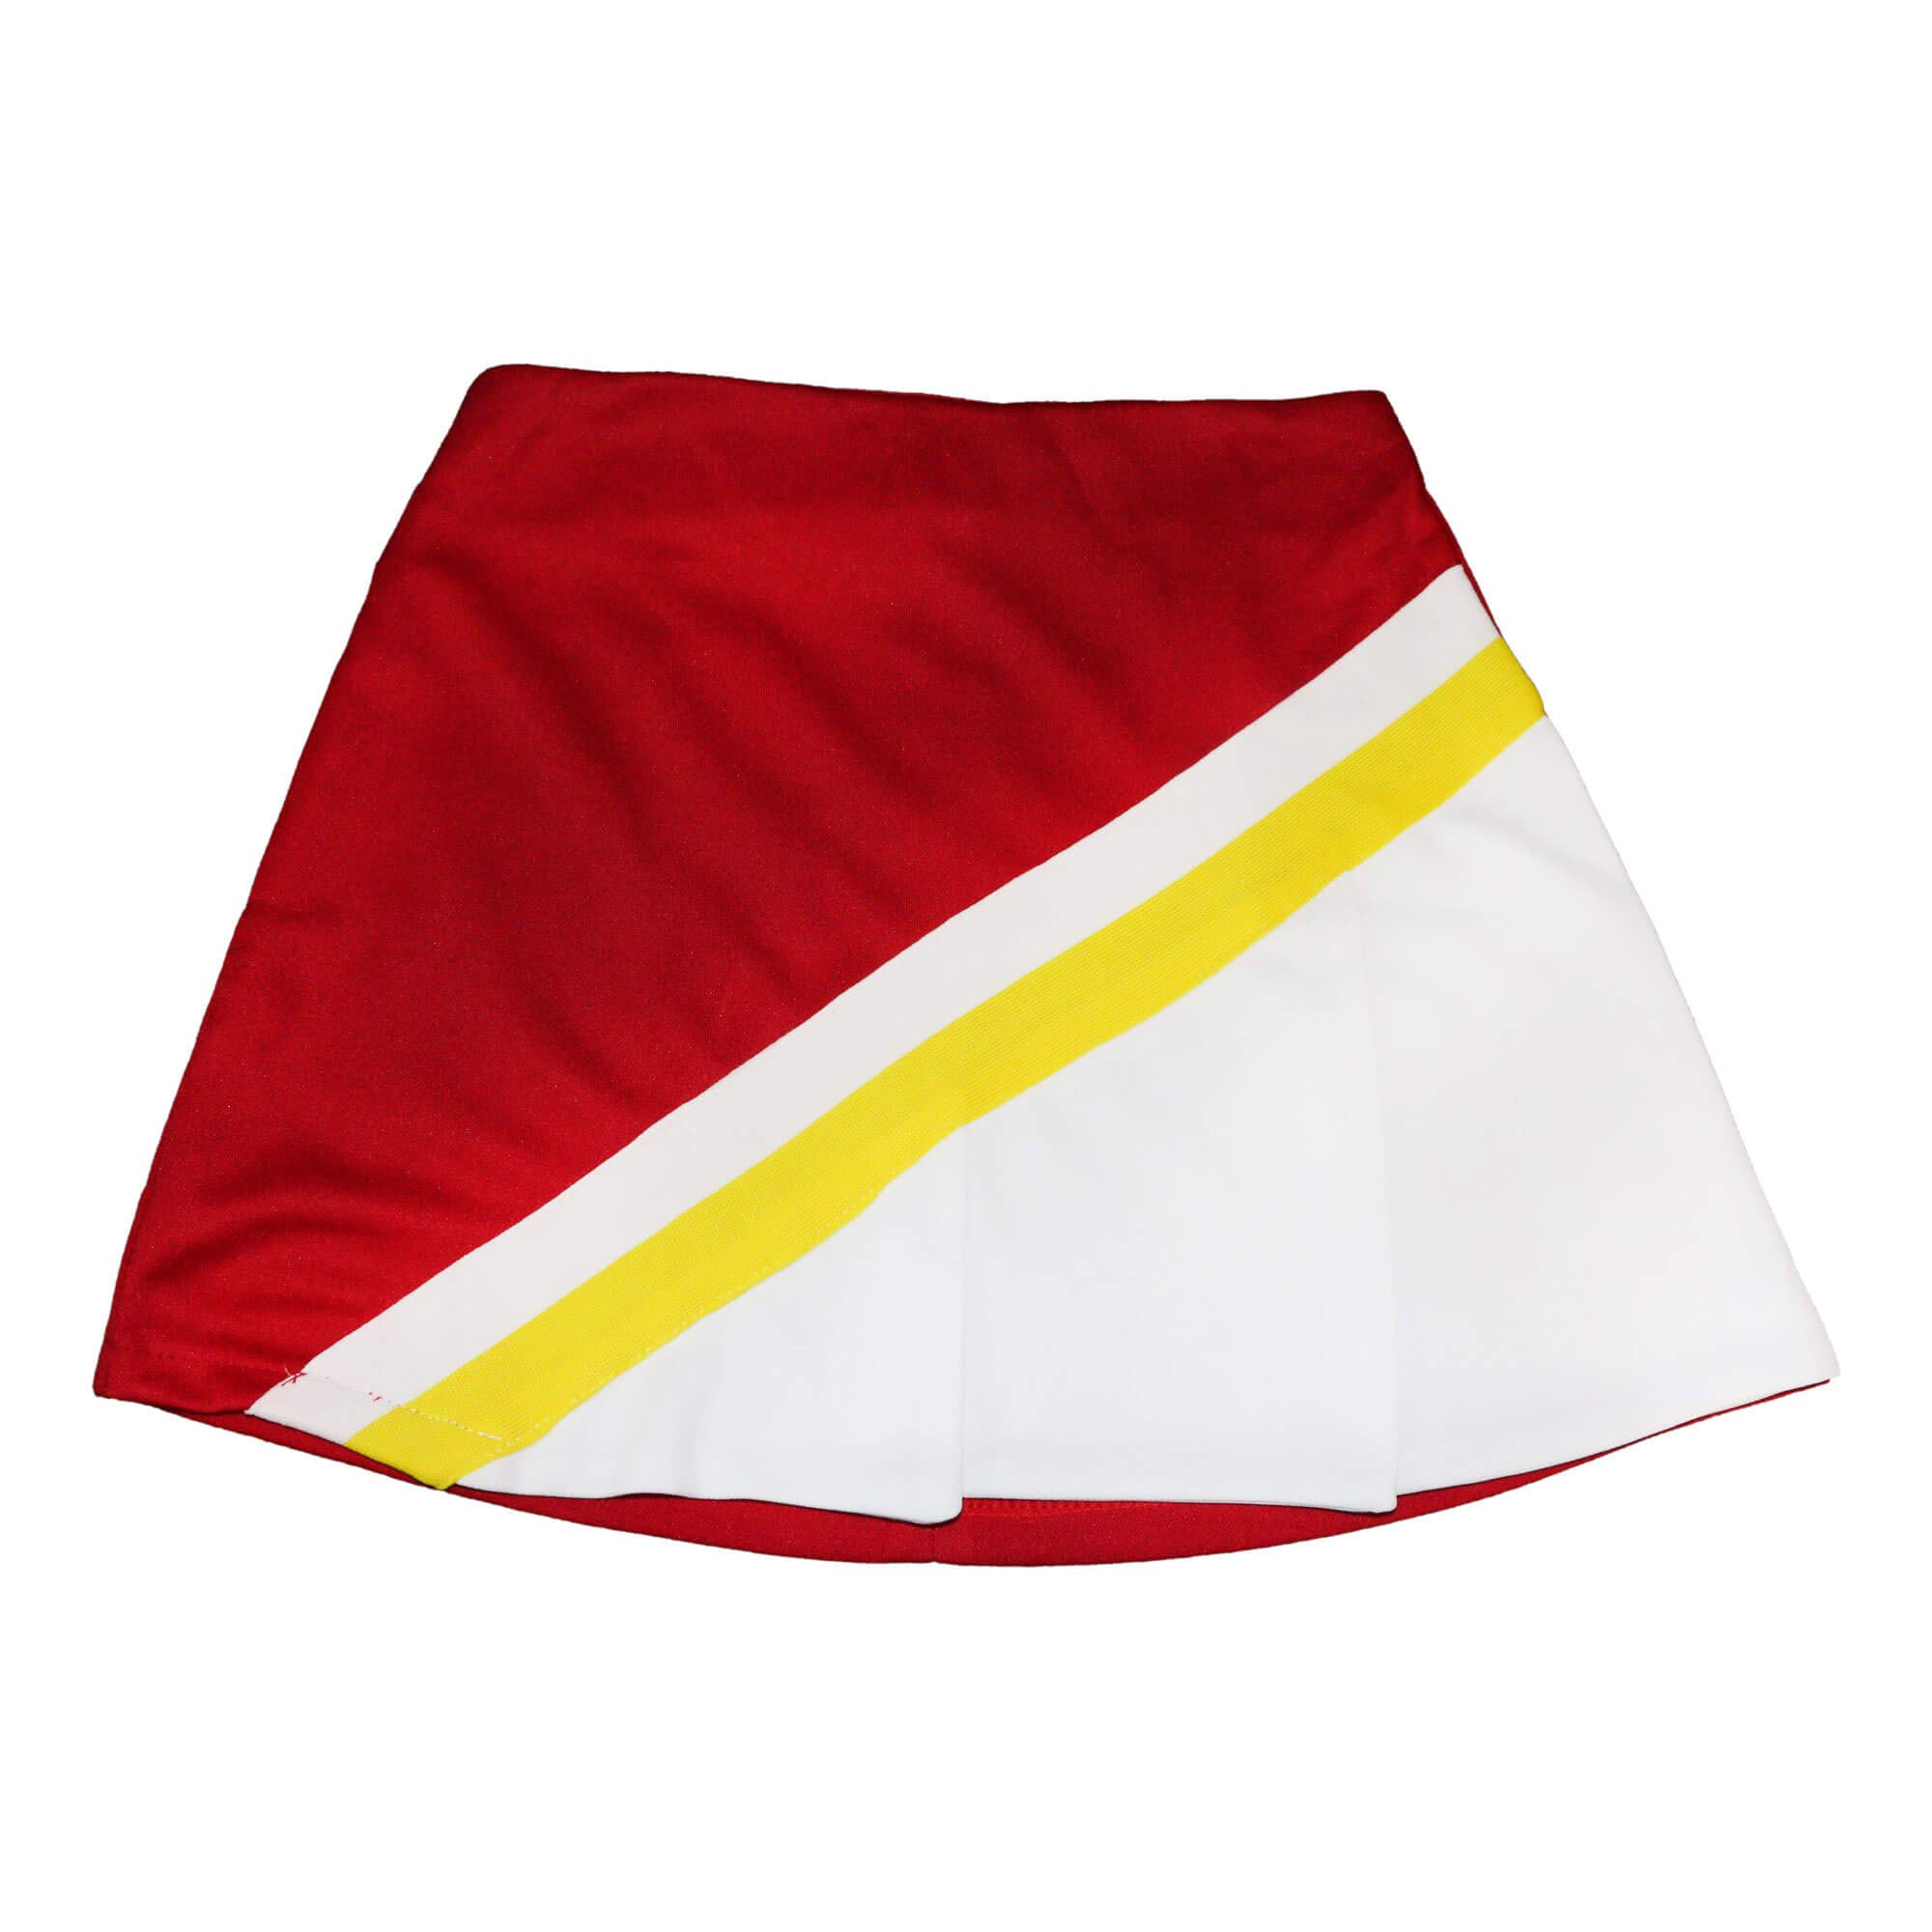 Danzcue Child Cheerleading A-Line Pleat Skirt, Scarlet/White, X-Small